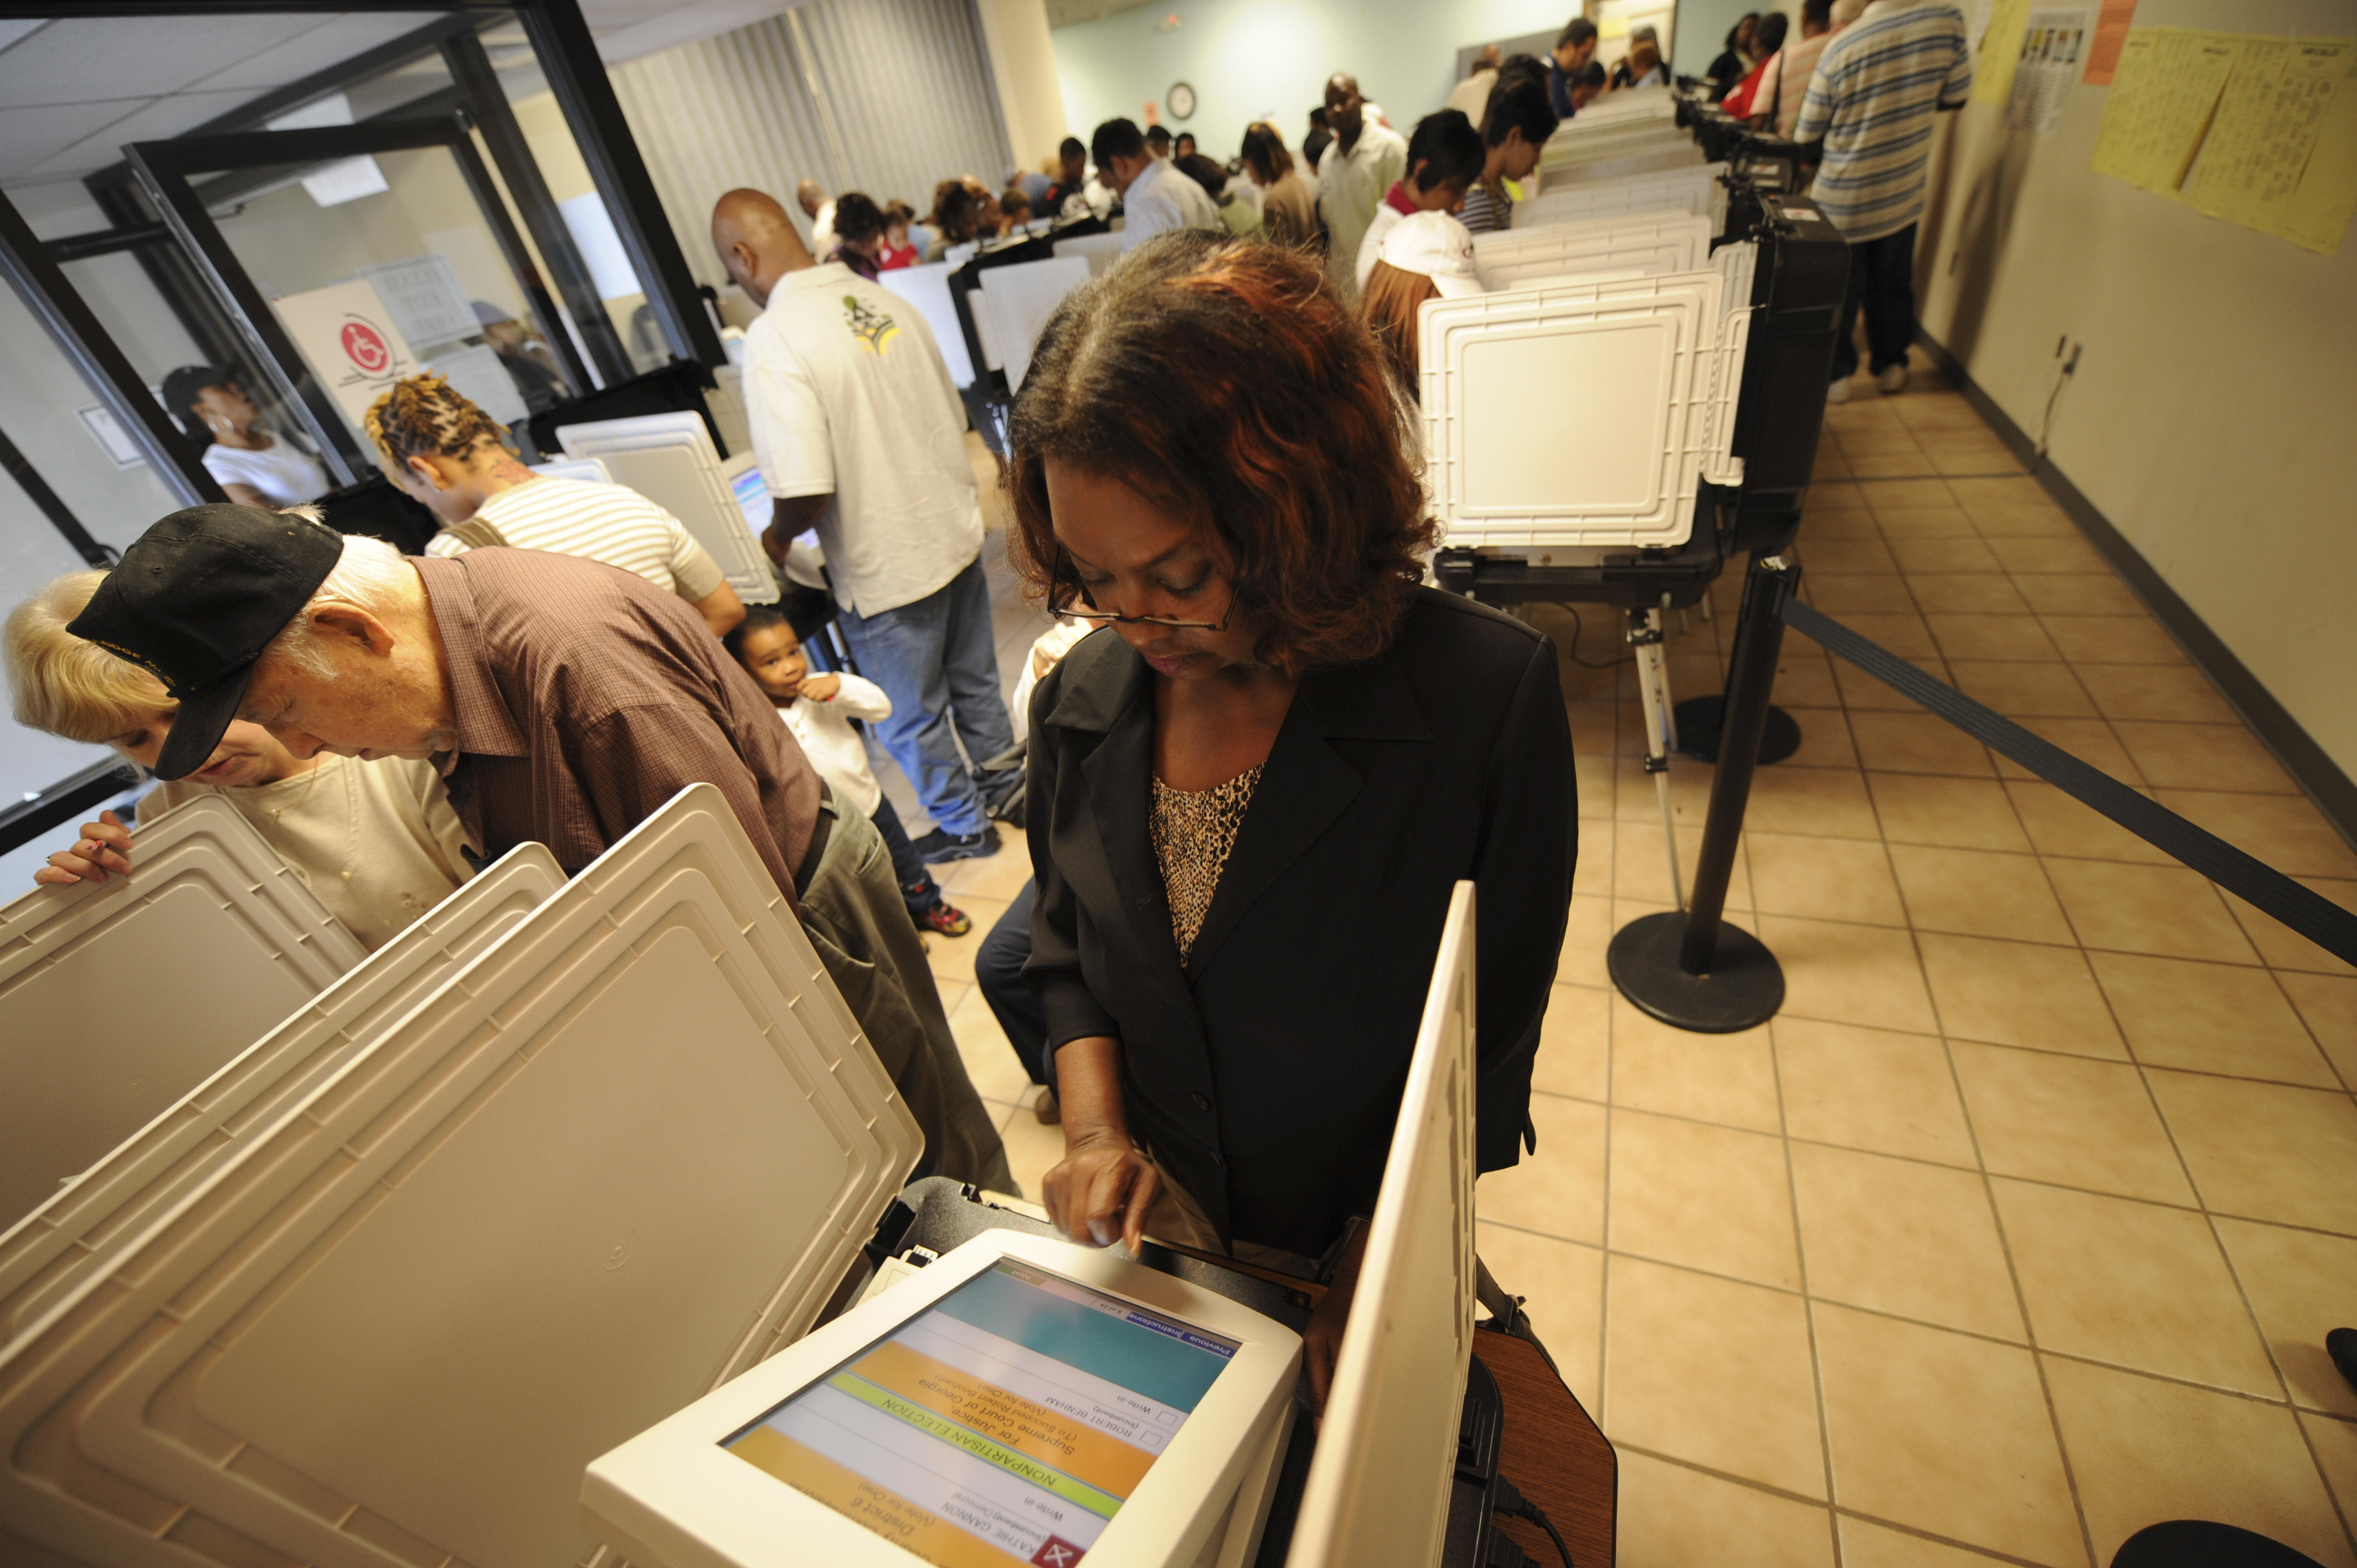 USA - 2008 Presidential Election - Early Voting